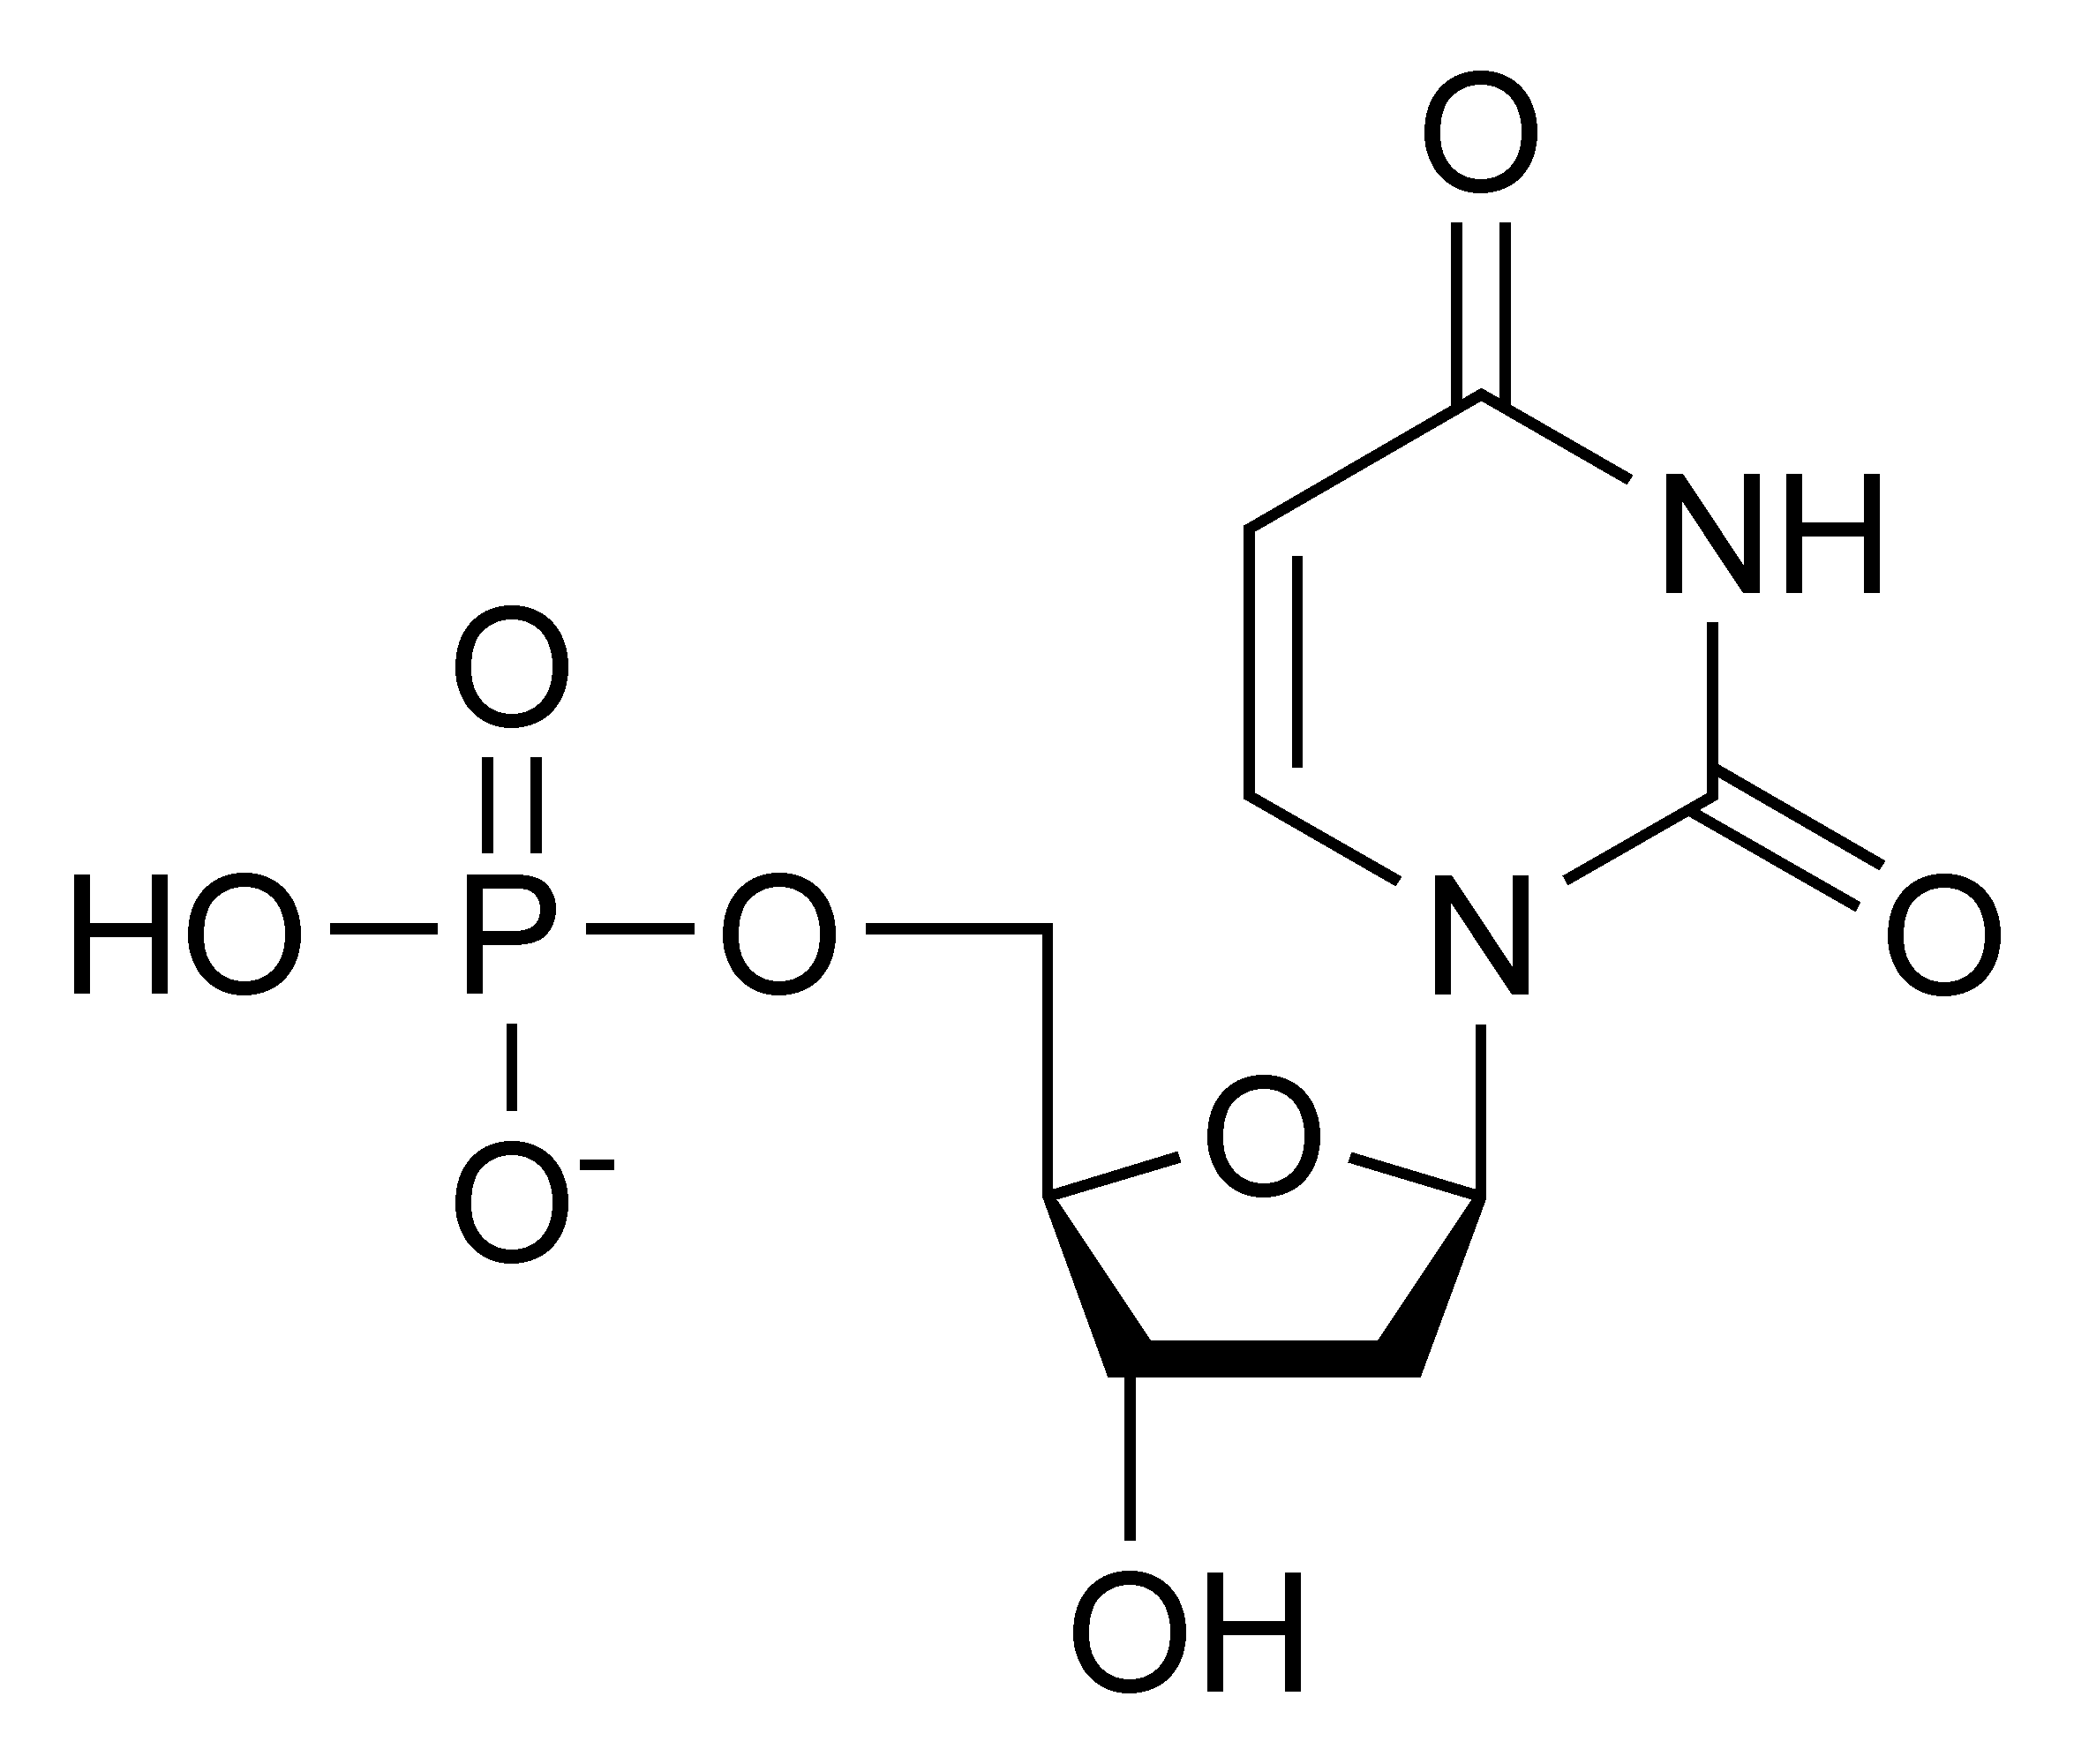 Chemical structure of deoxyuridine monophosphate